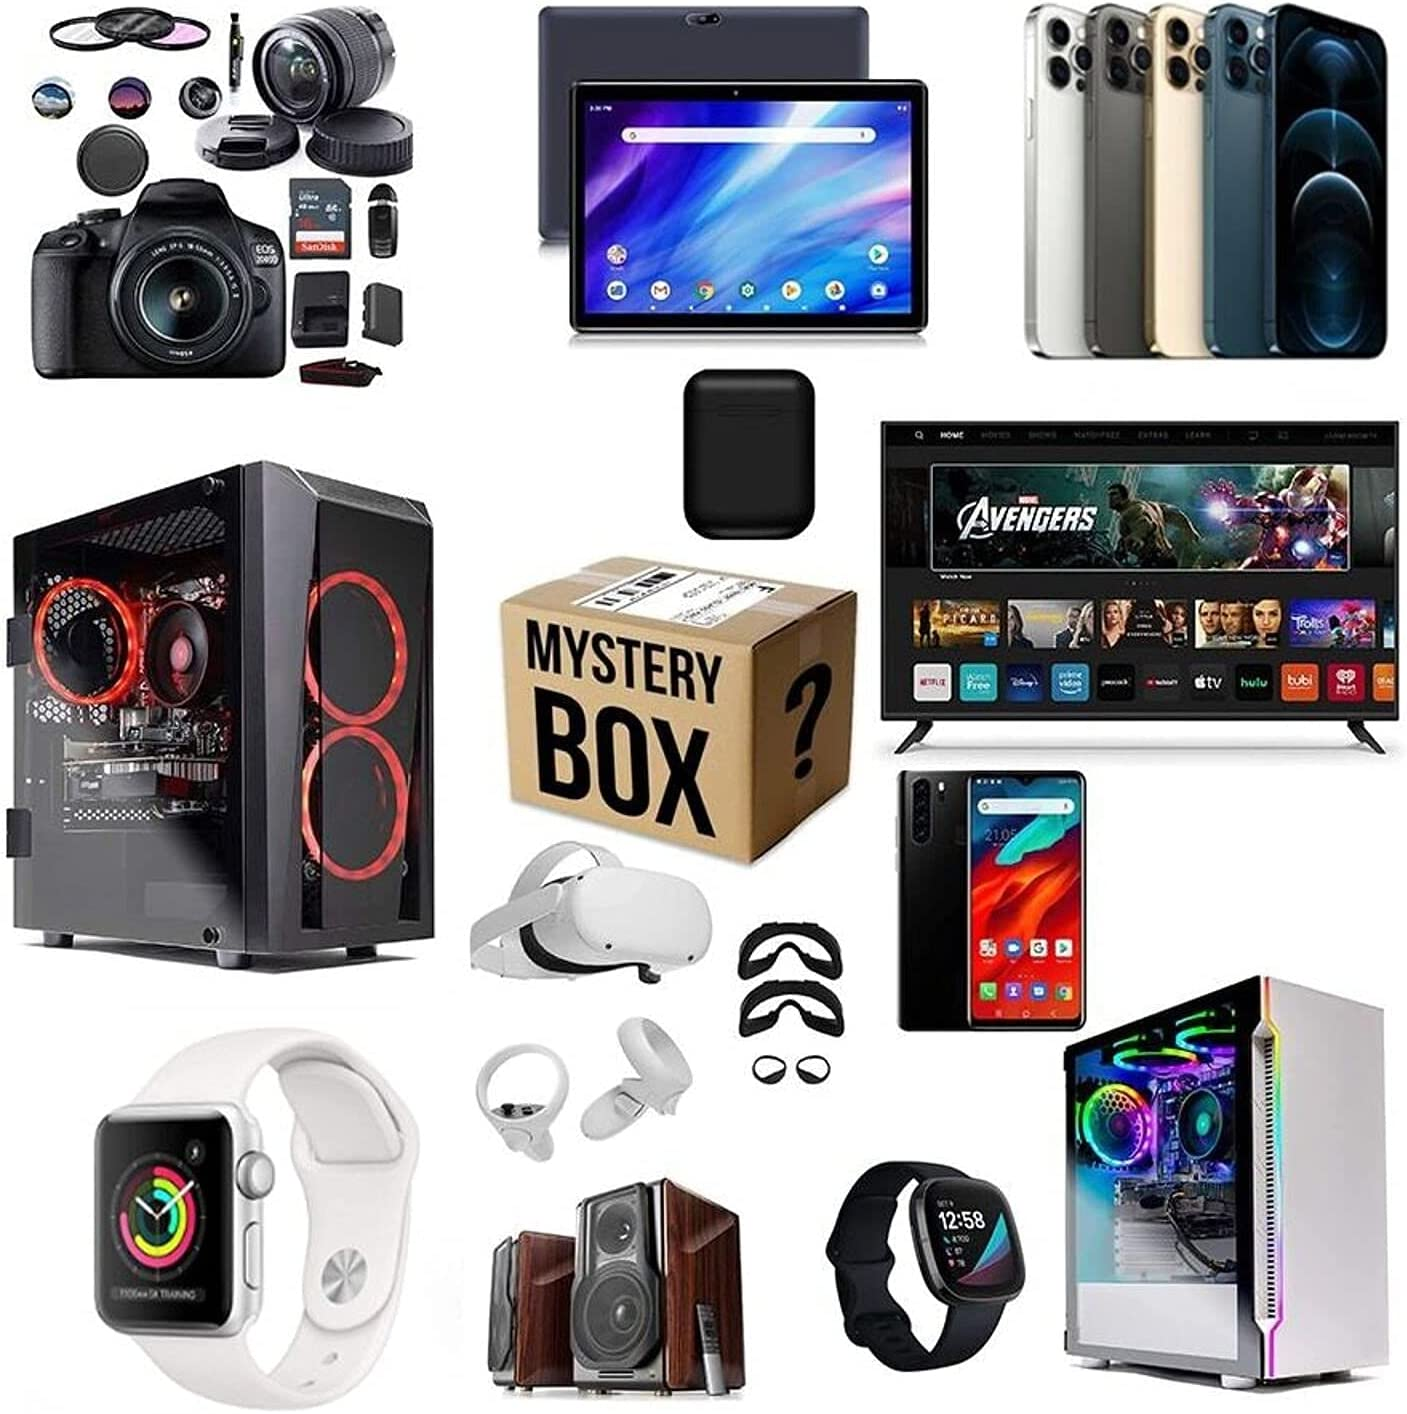 Mystery shopping Lucky Box Mysteries Popular overseas Electronic Boxes Mysteri